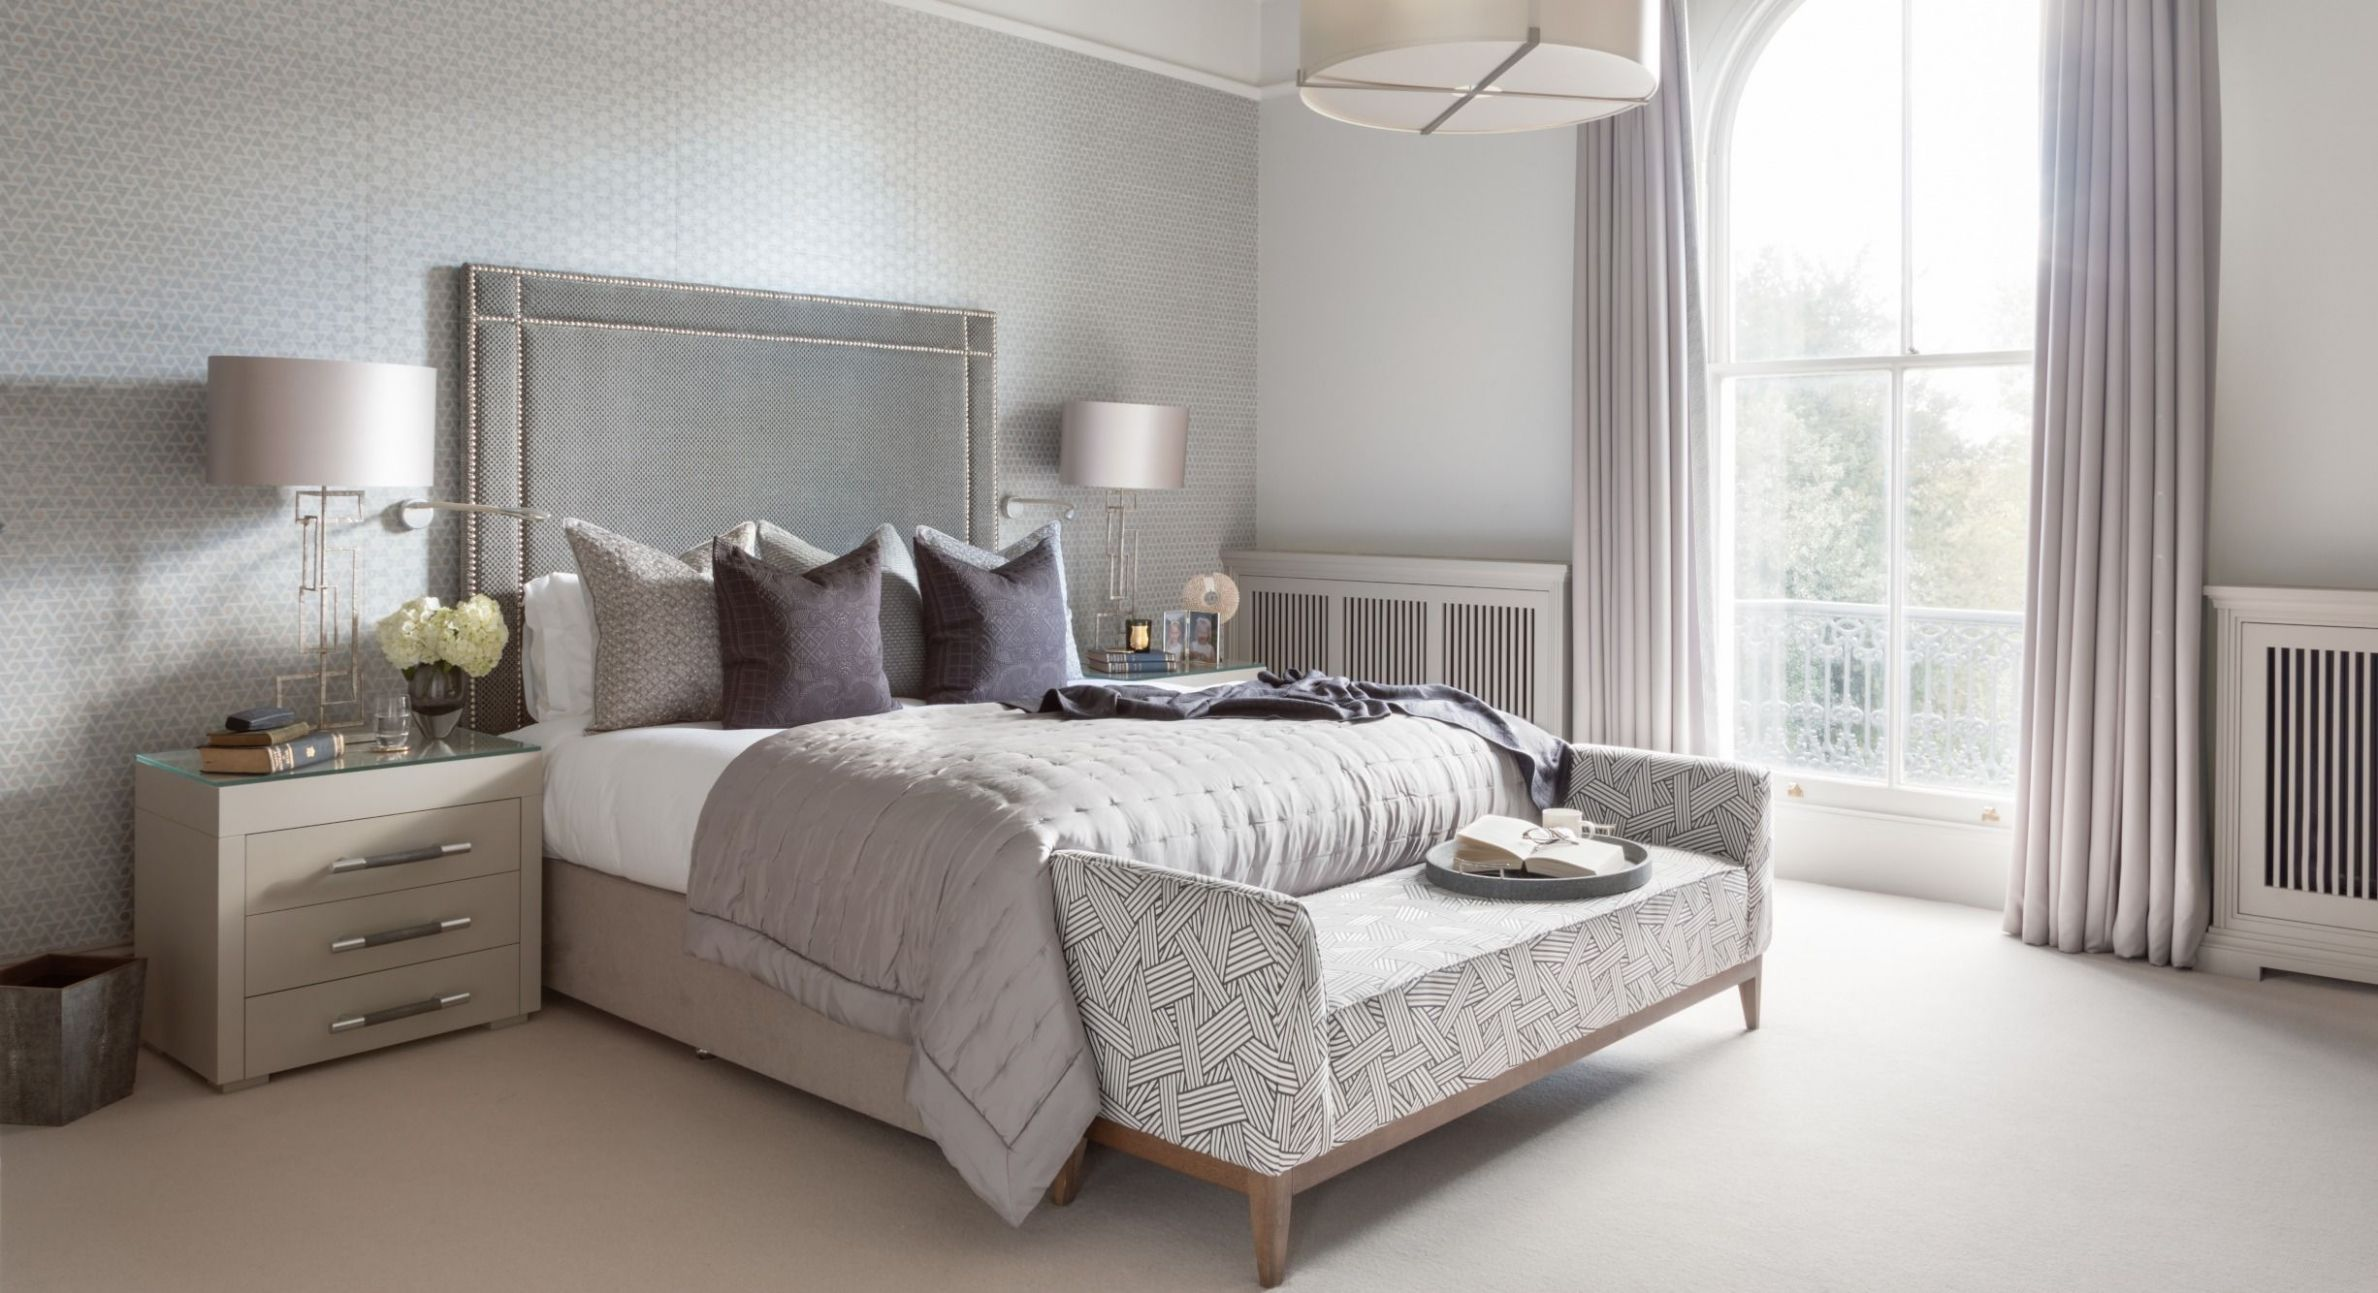 Neutral Bedroom Colour Ideas in 12 | Neutral bedrooms, Gender ..